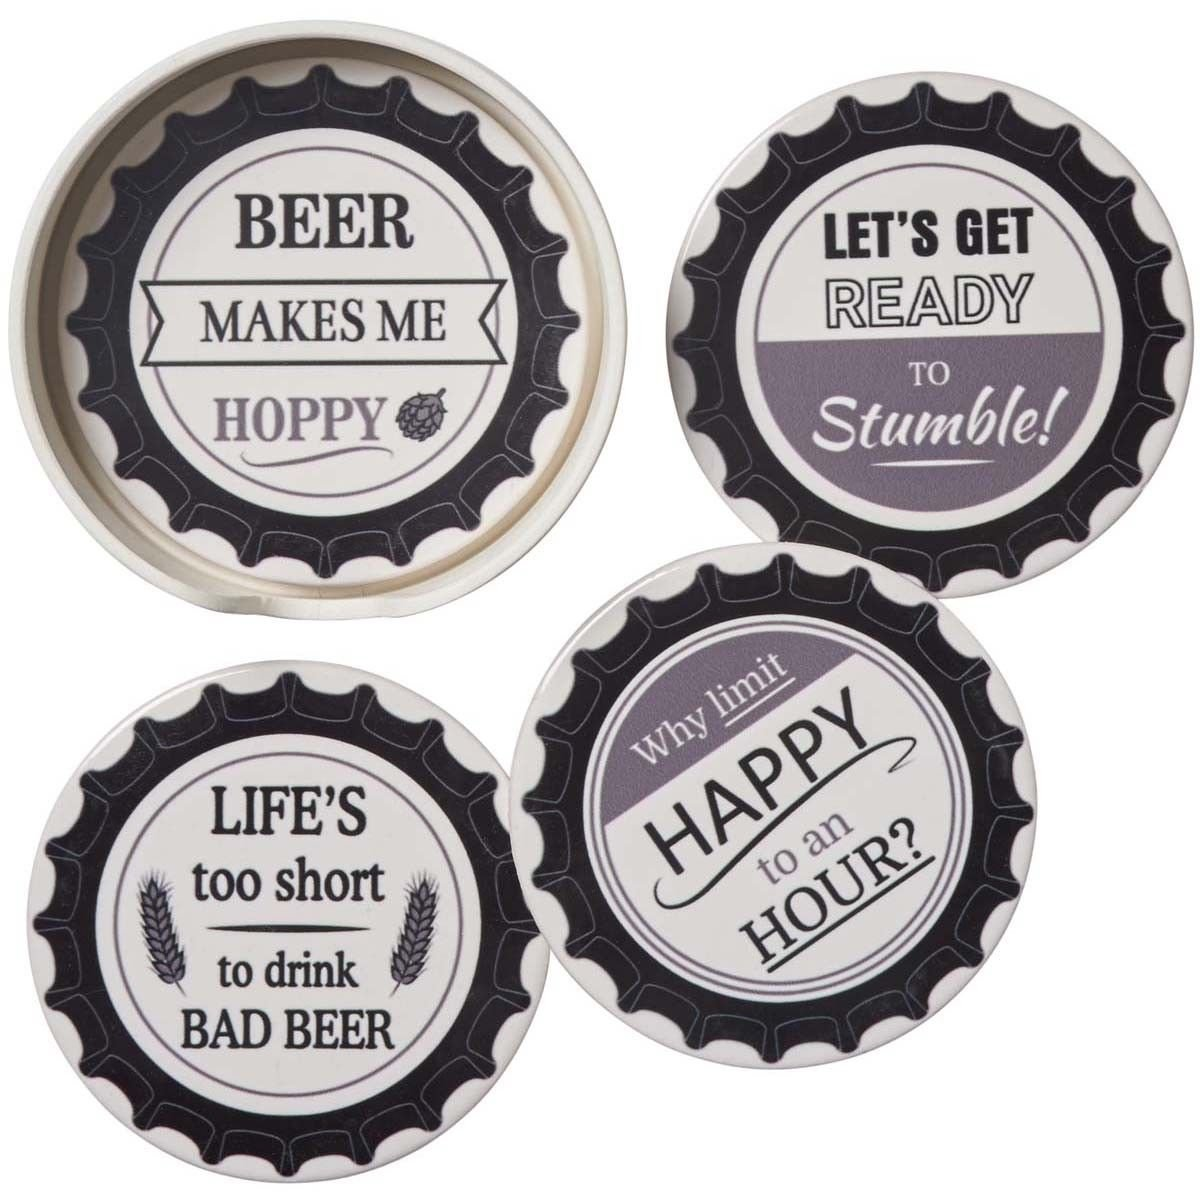 Coasters Pack of 6 with Chrome Holder Metal Smiley or Cup Coasters Black or White Babavoom Black Smiley Face Coasters